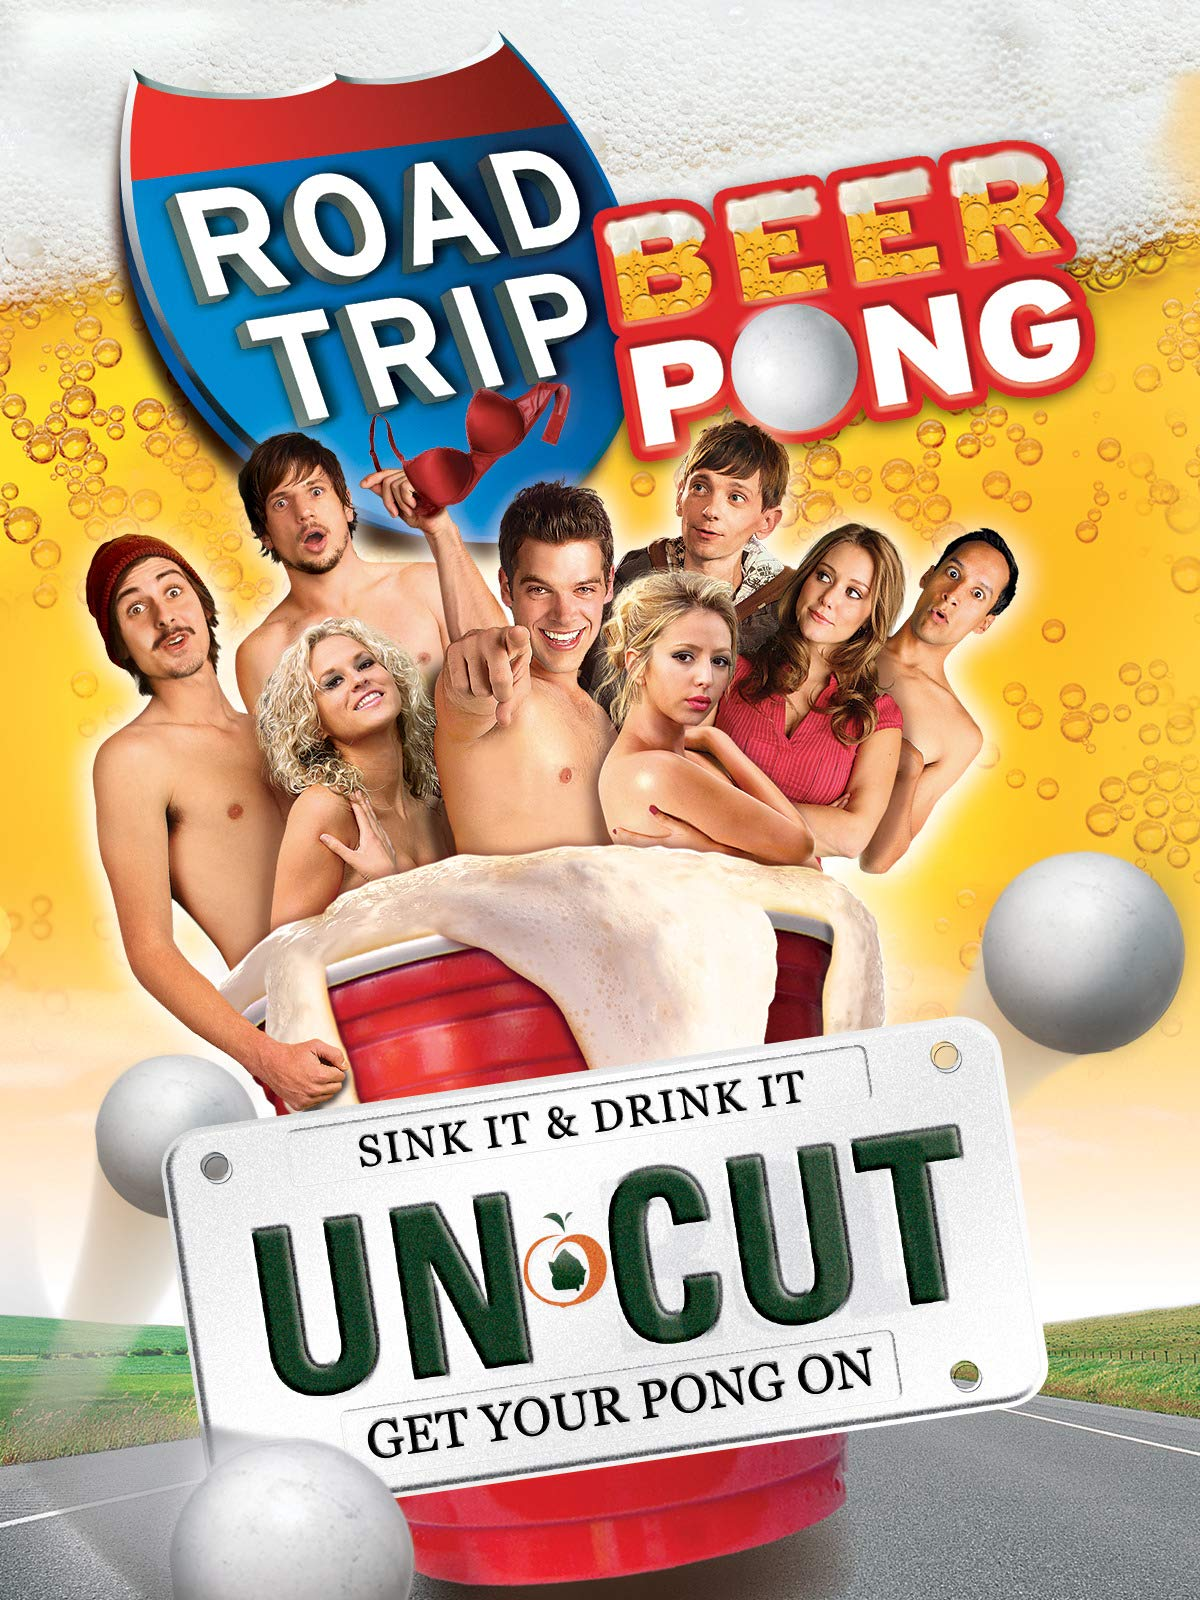 Road Trip - Beer Pong on Amazon Prime Video UK